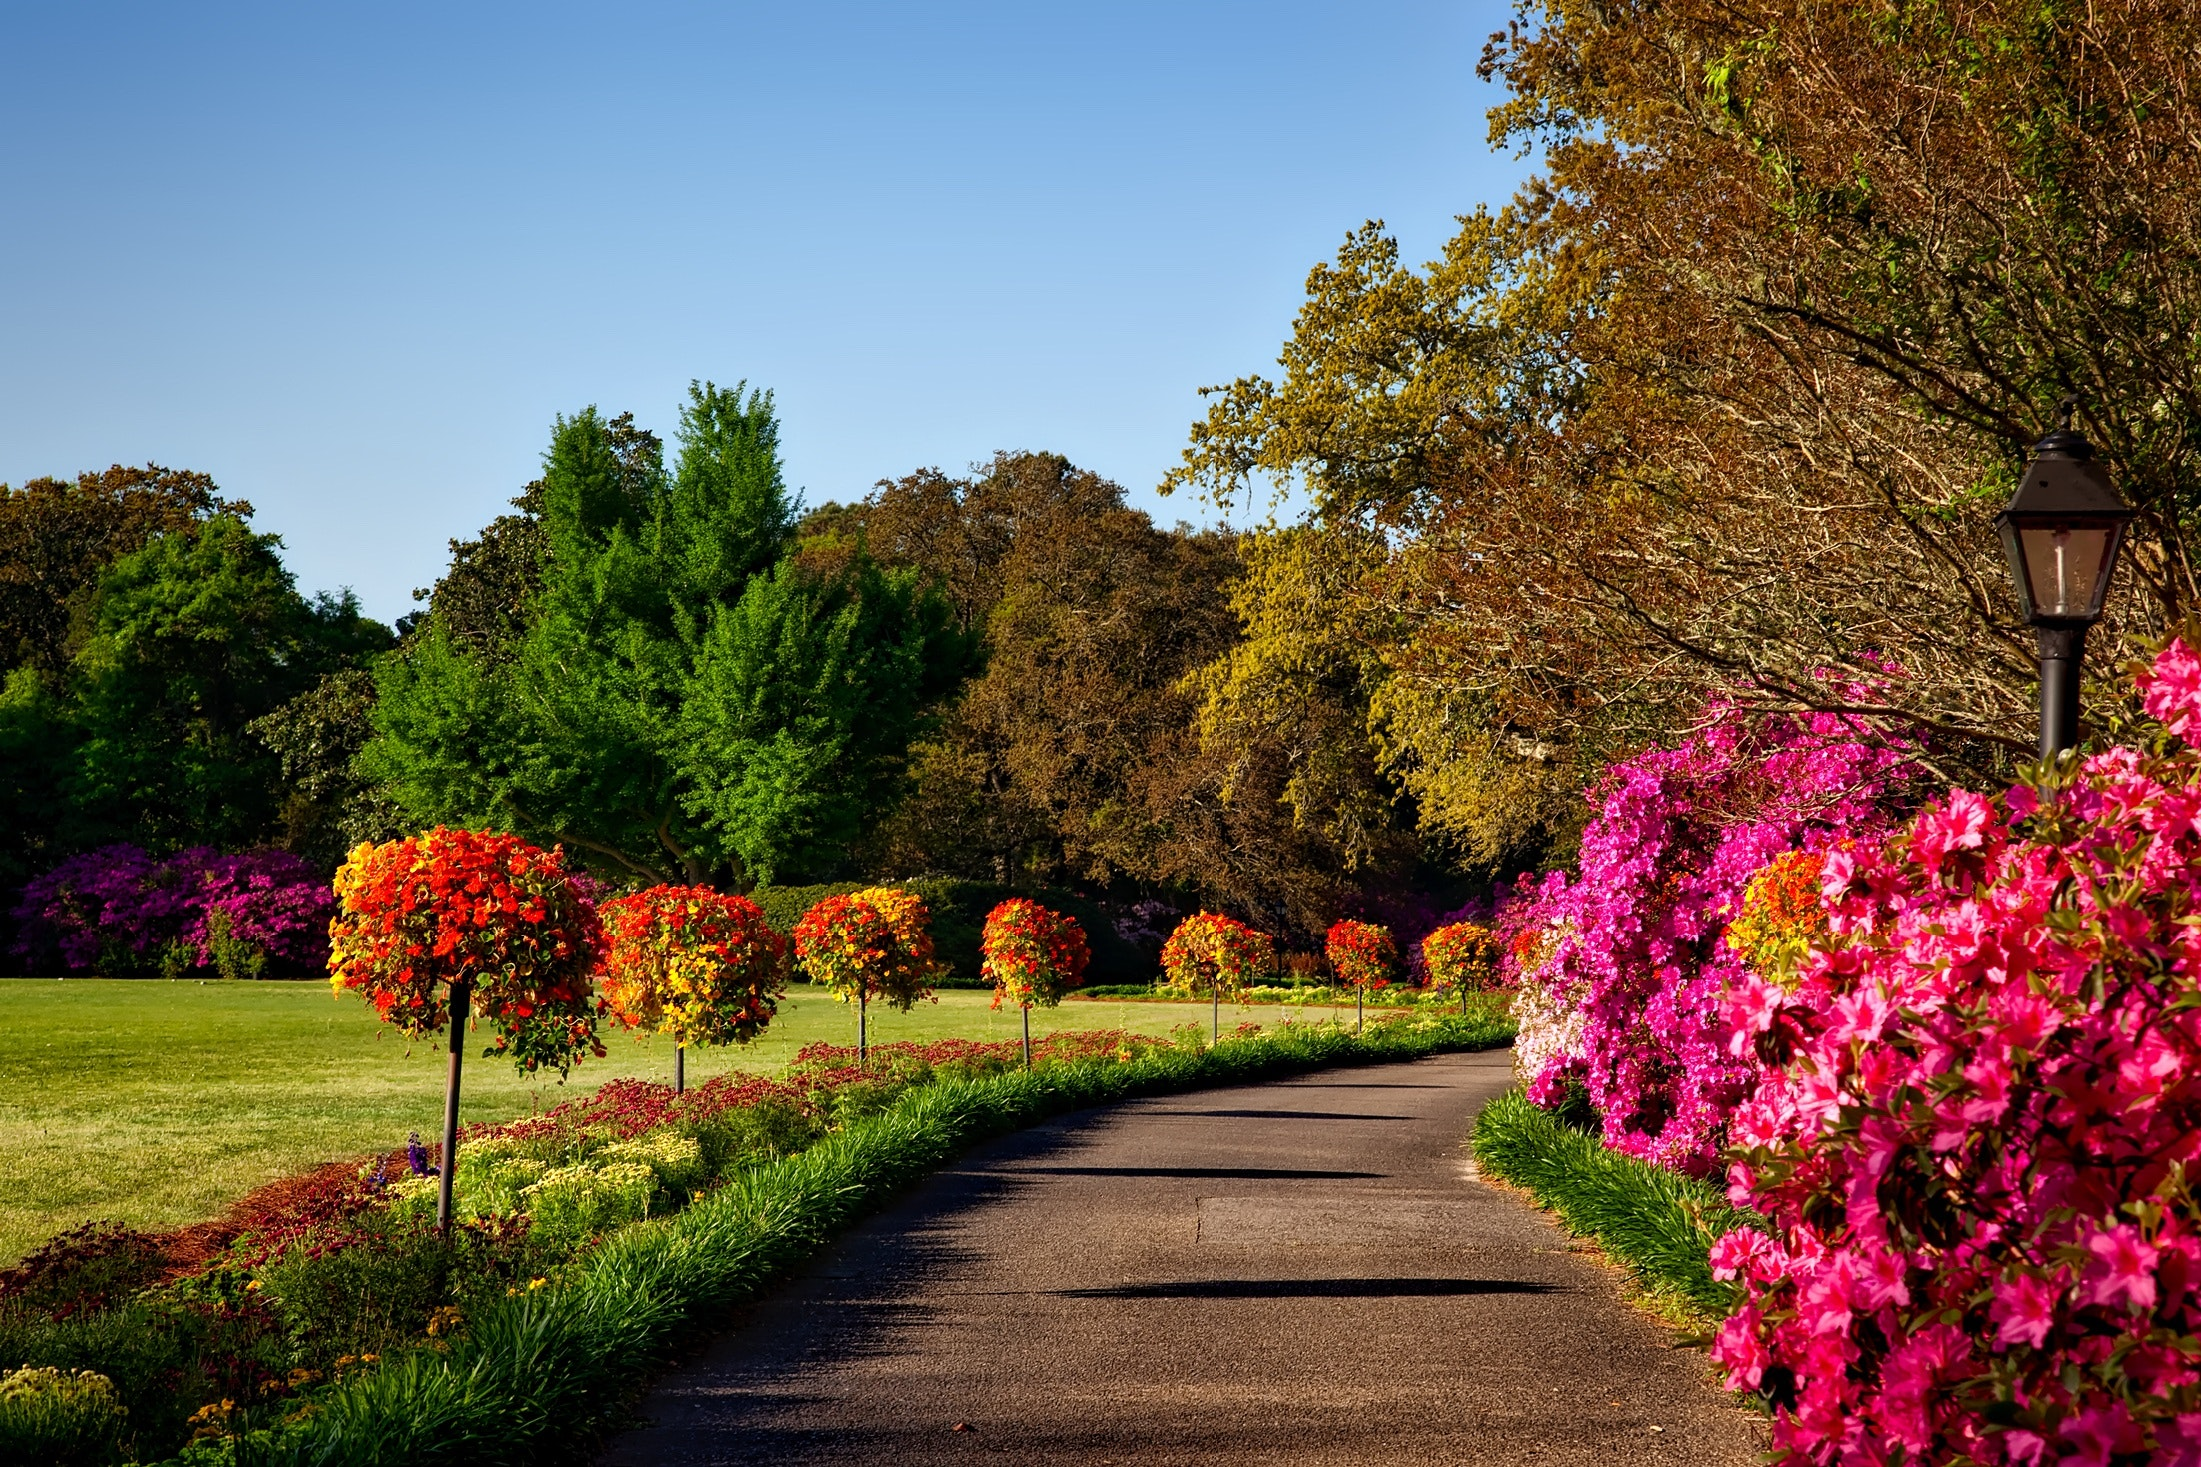 flowers garden. related searches: garden nature flowers